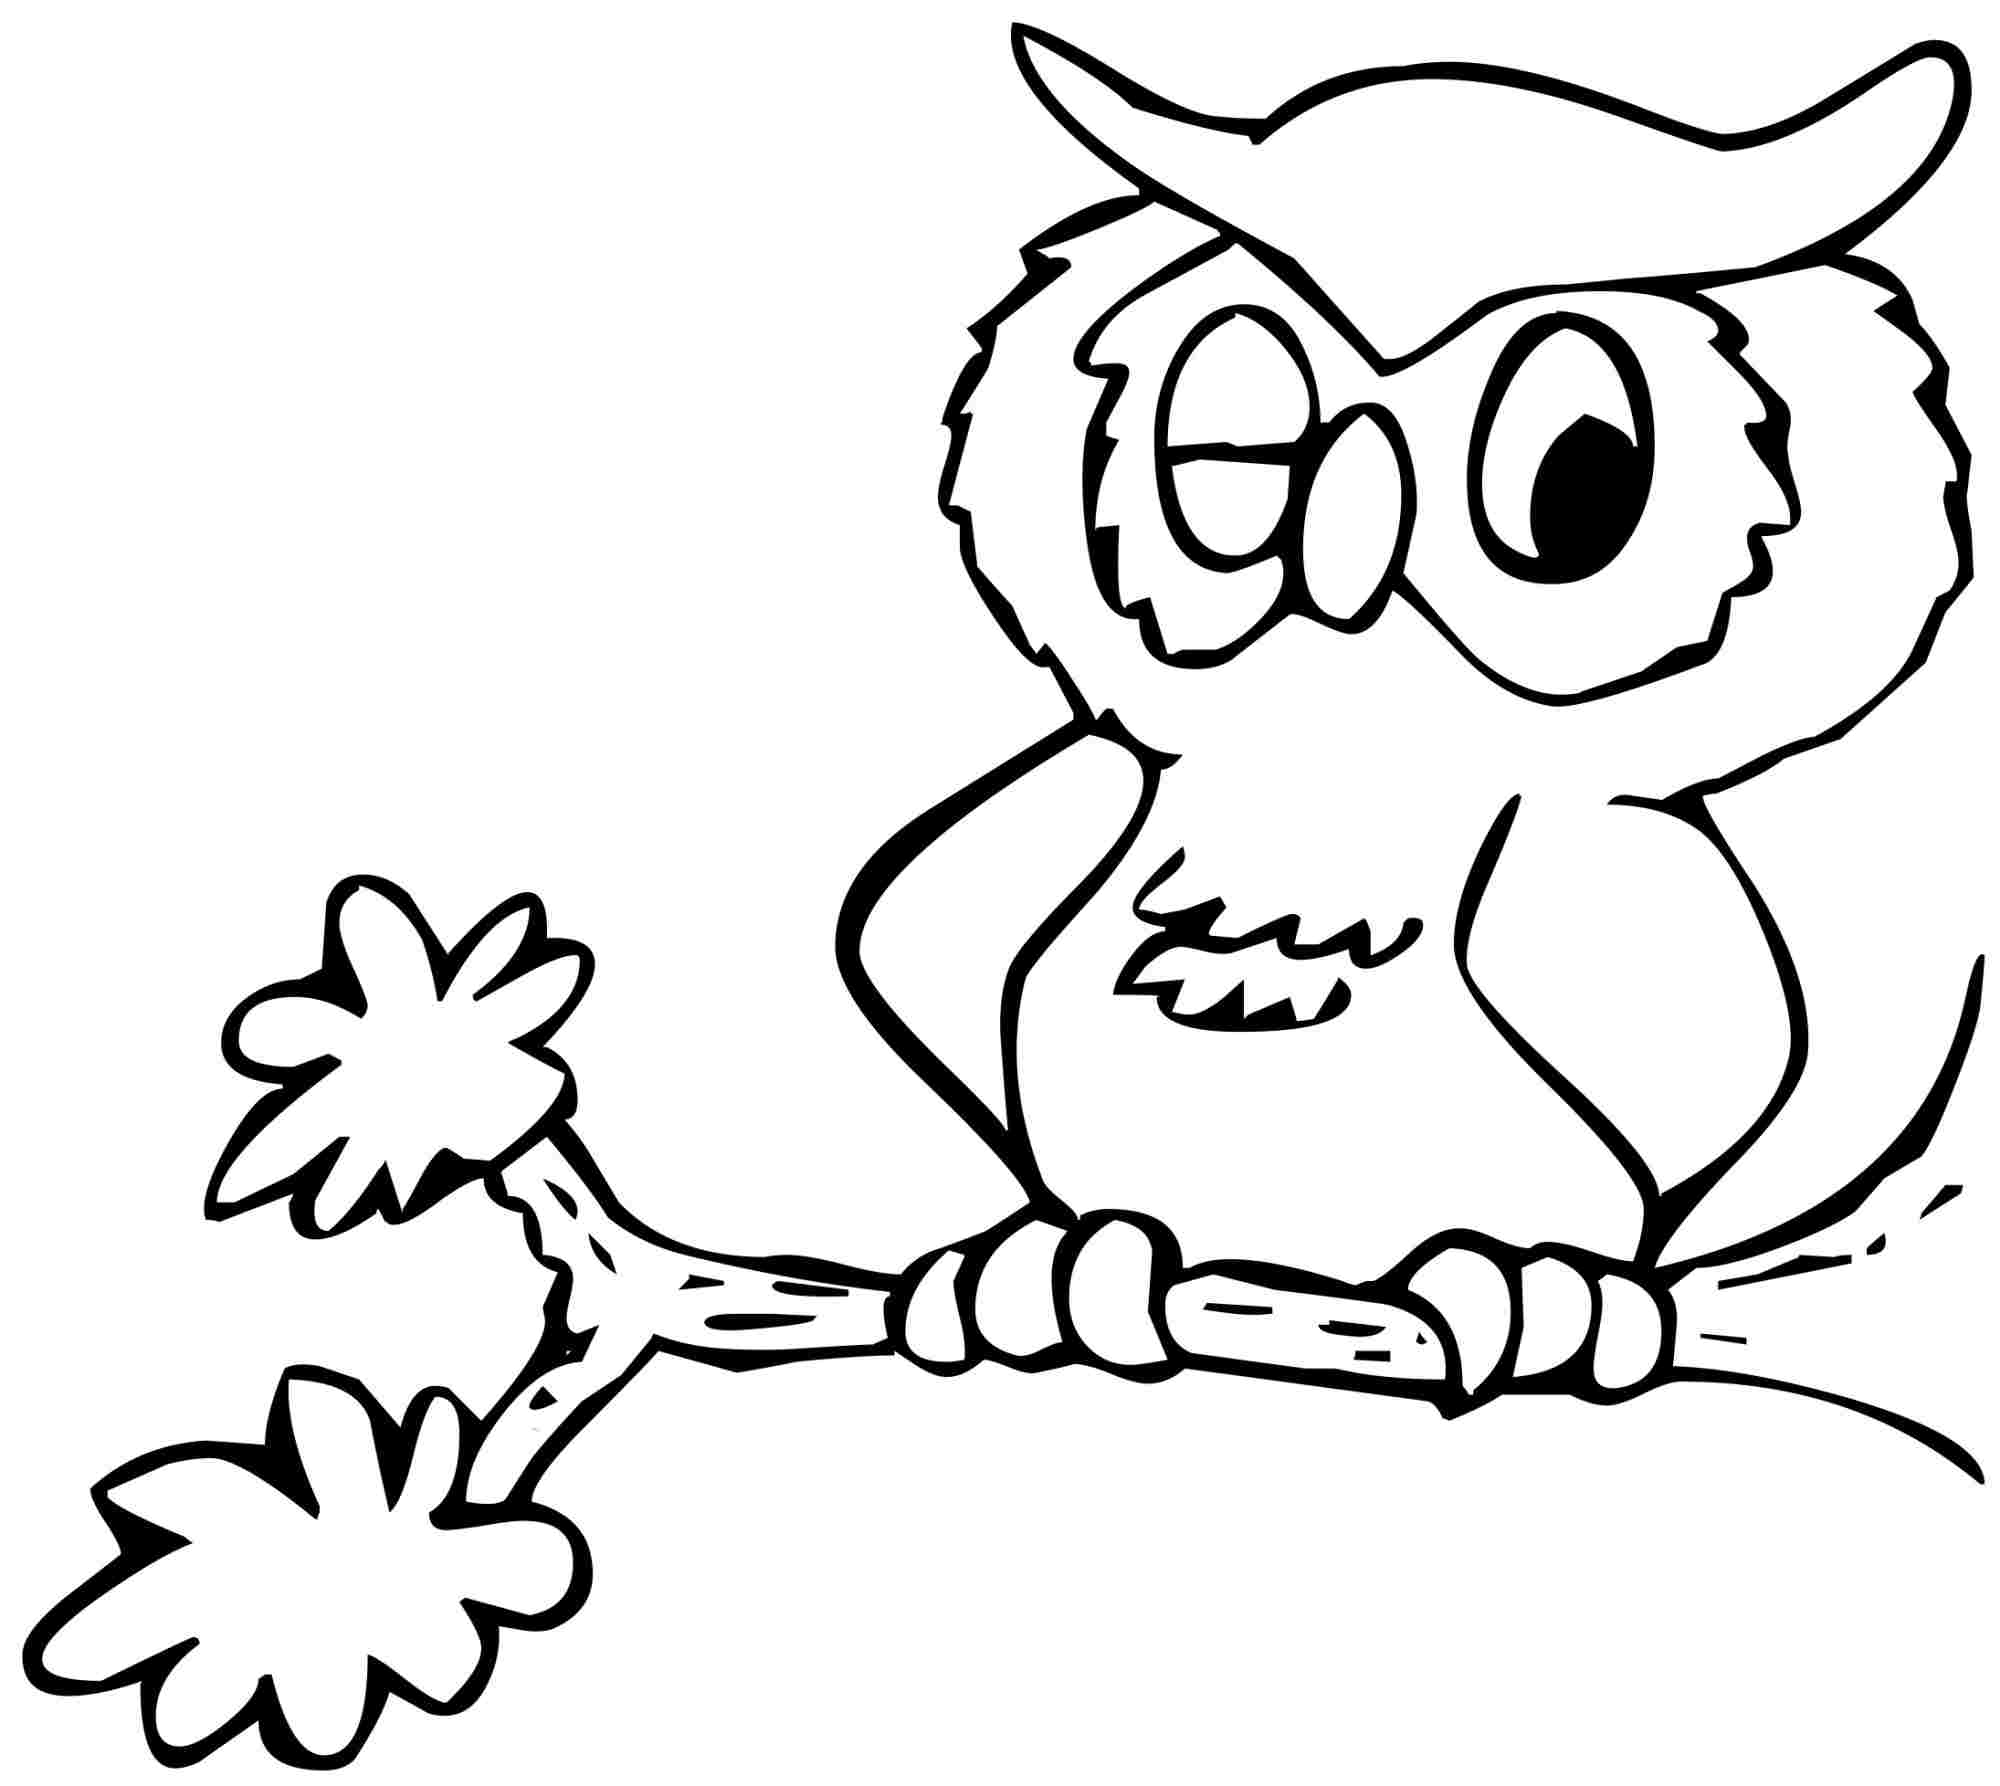 Coloring Pages For Girls 9 And Up | Free download best Coloring ...